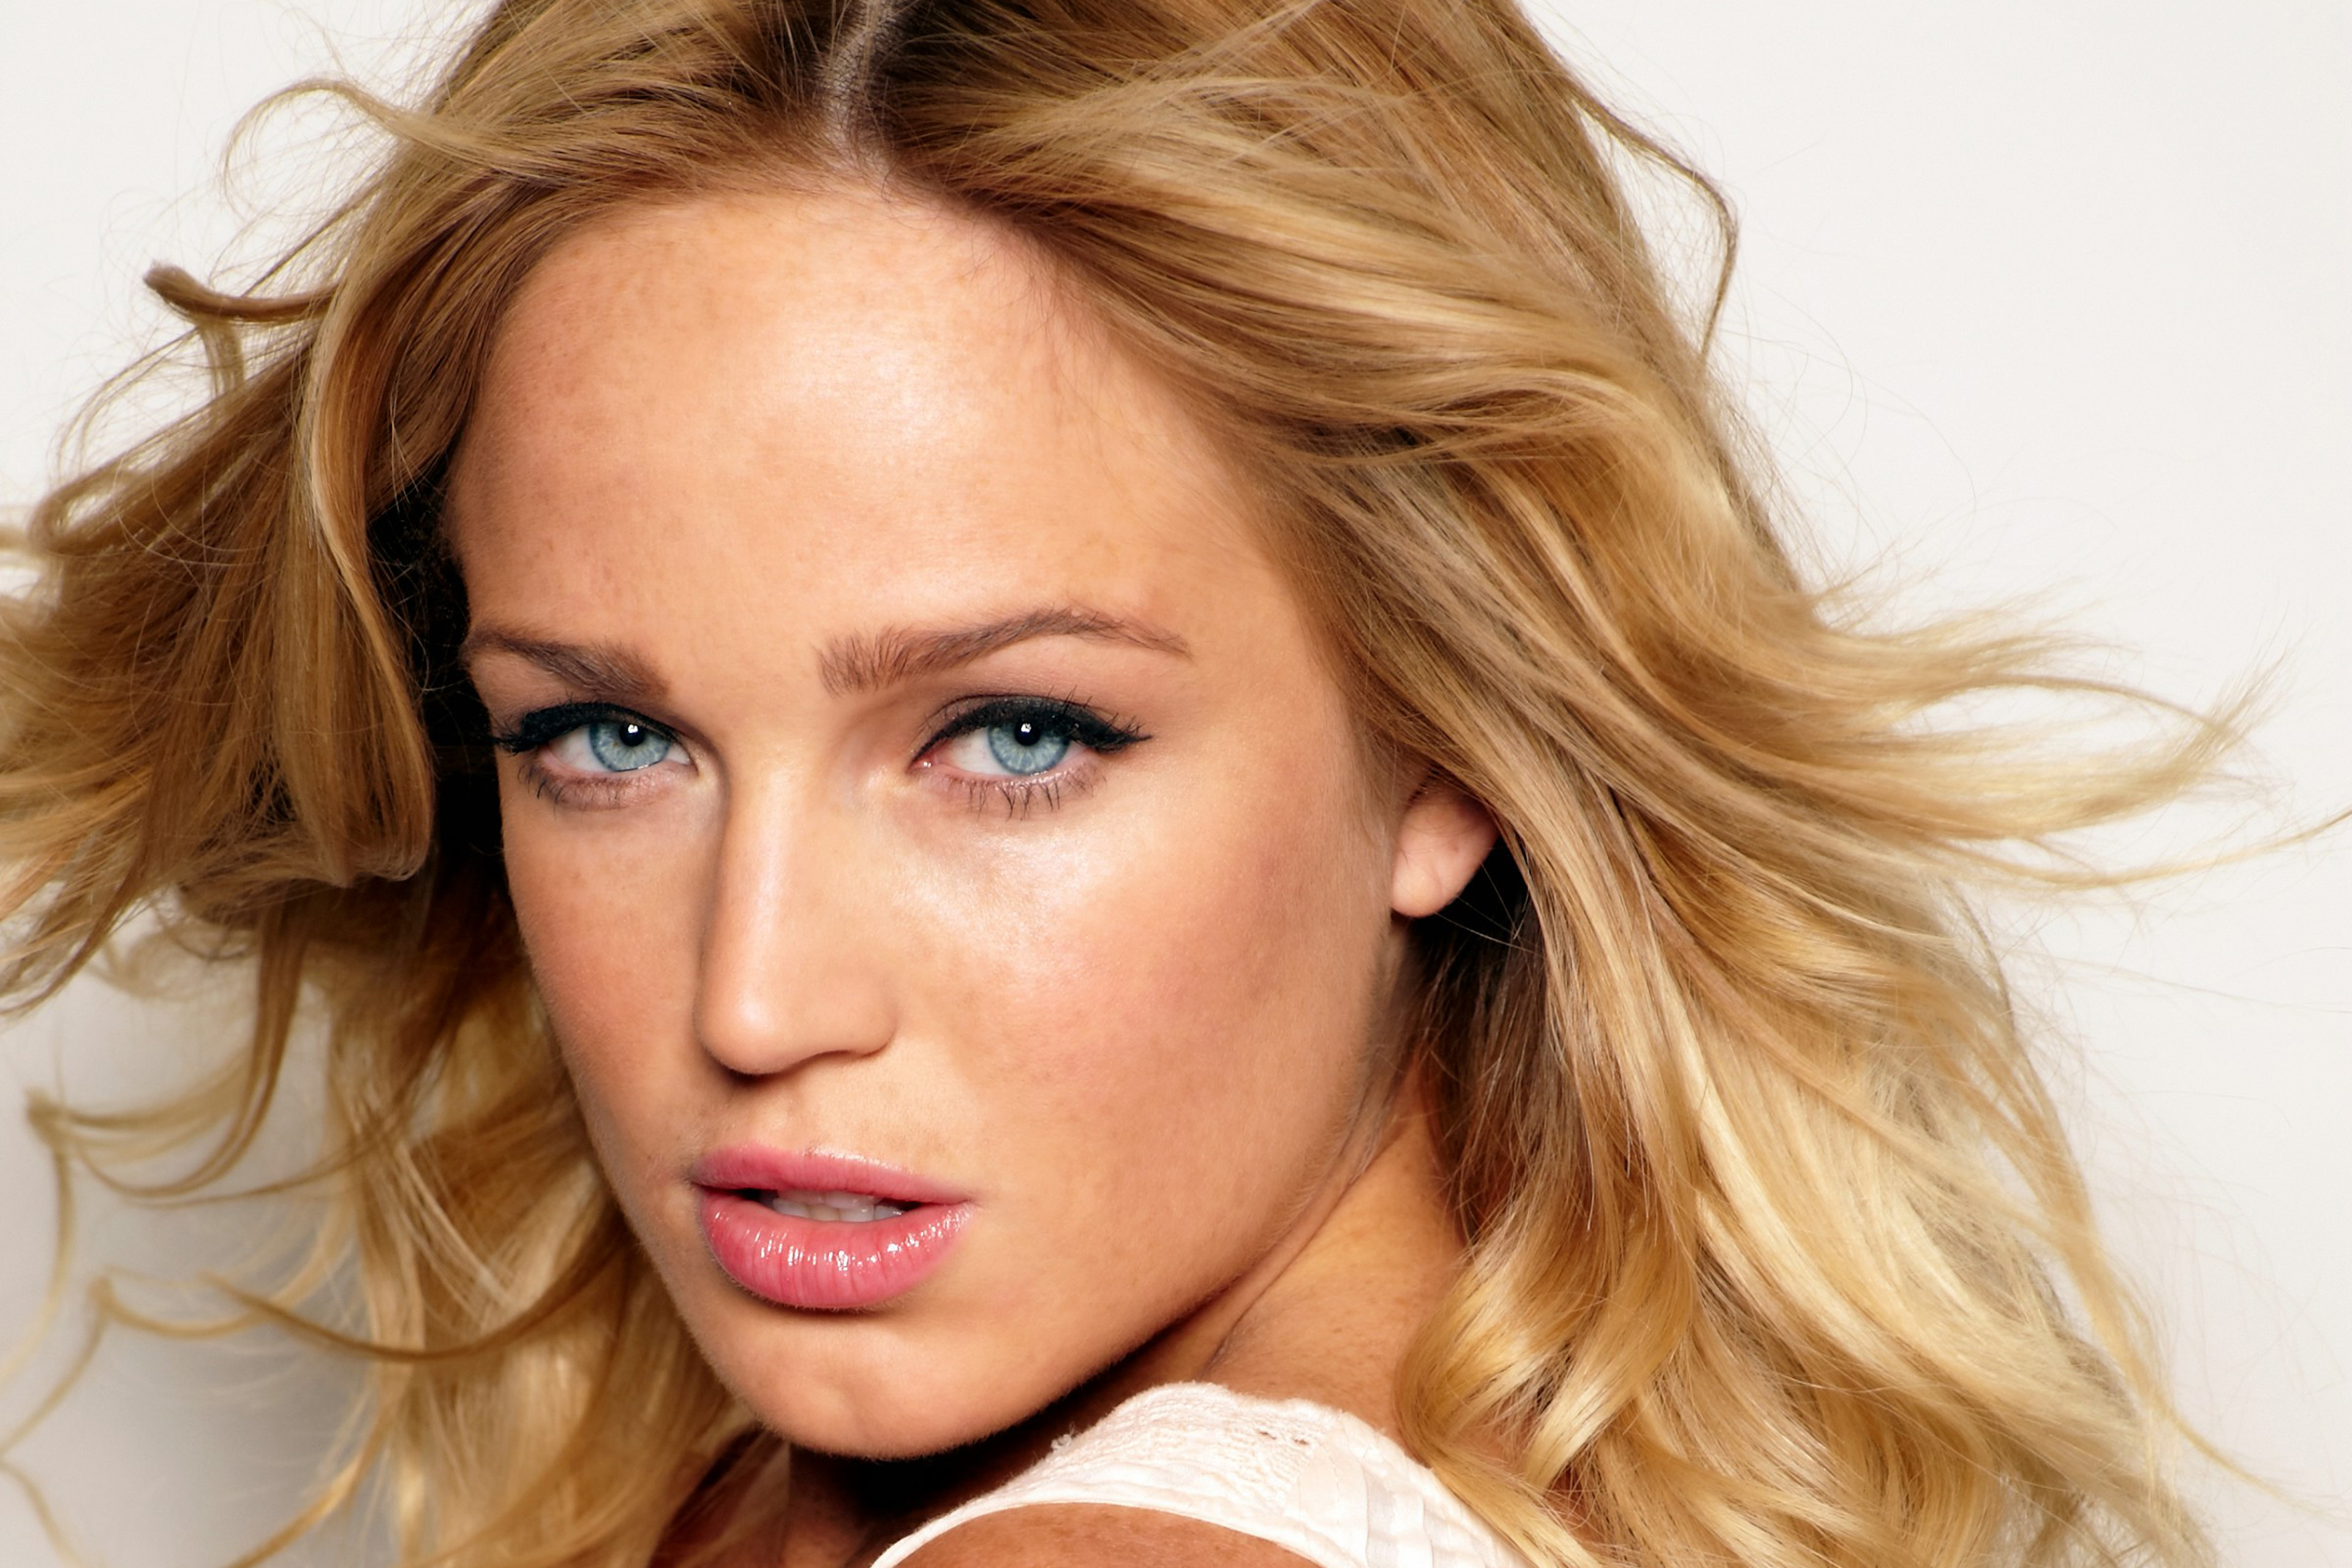 caity lotz face hd wallpaper pictures 62244